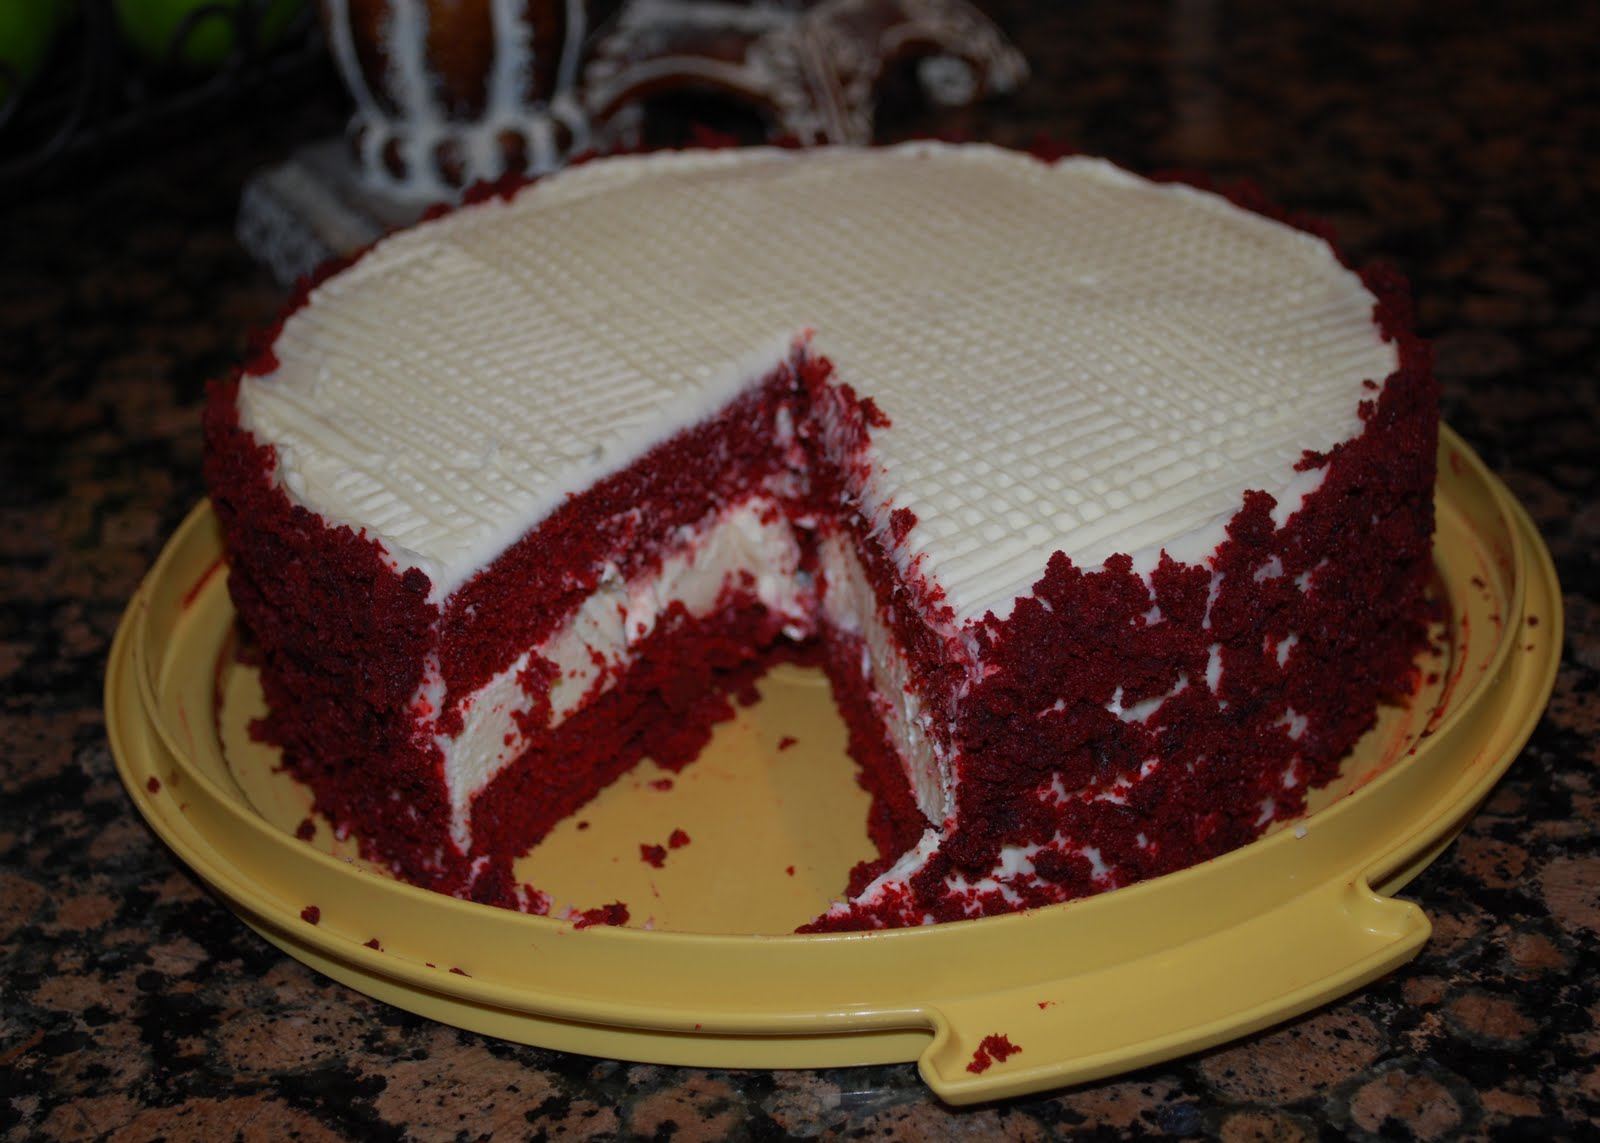 Culinary Couture: Red Velvet Cheesecake